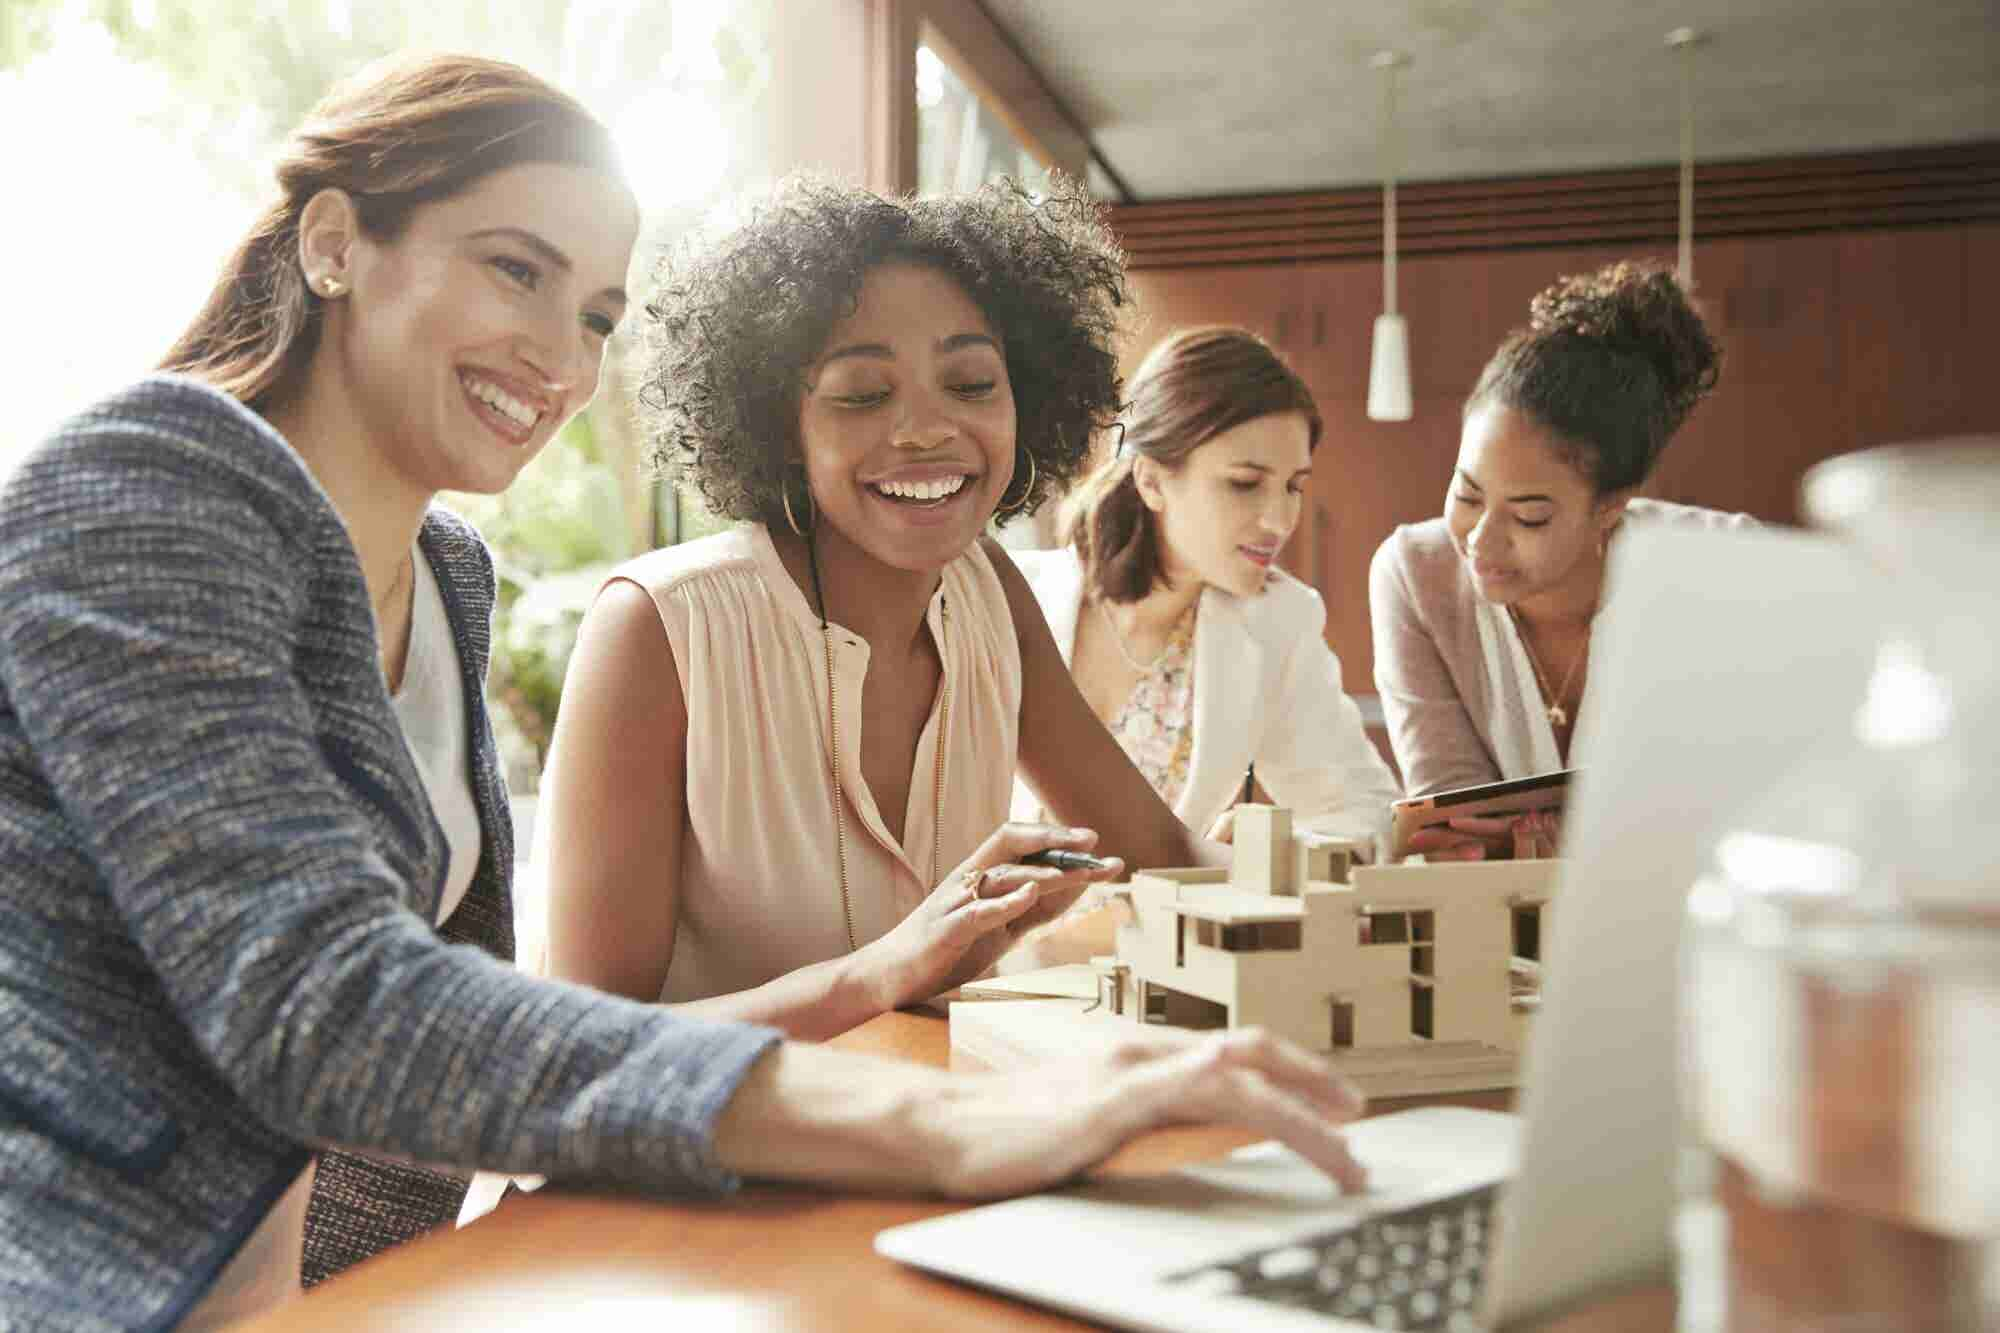 'NextGen Women' Outperform (Men) in Business. And They're Coming Into the Workforce